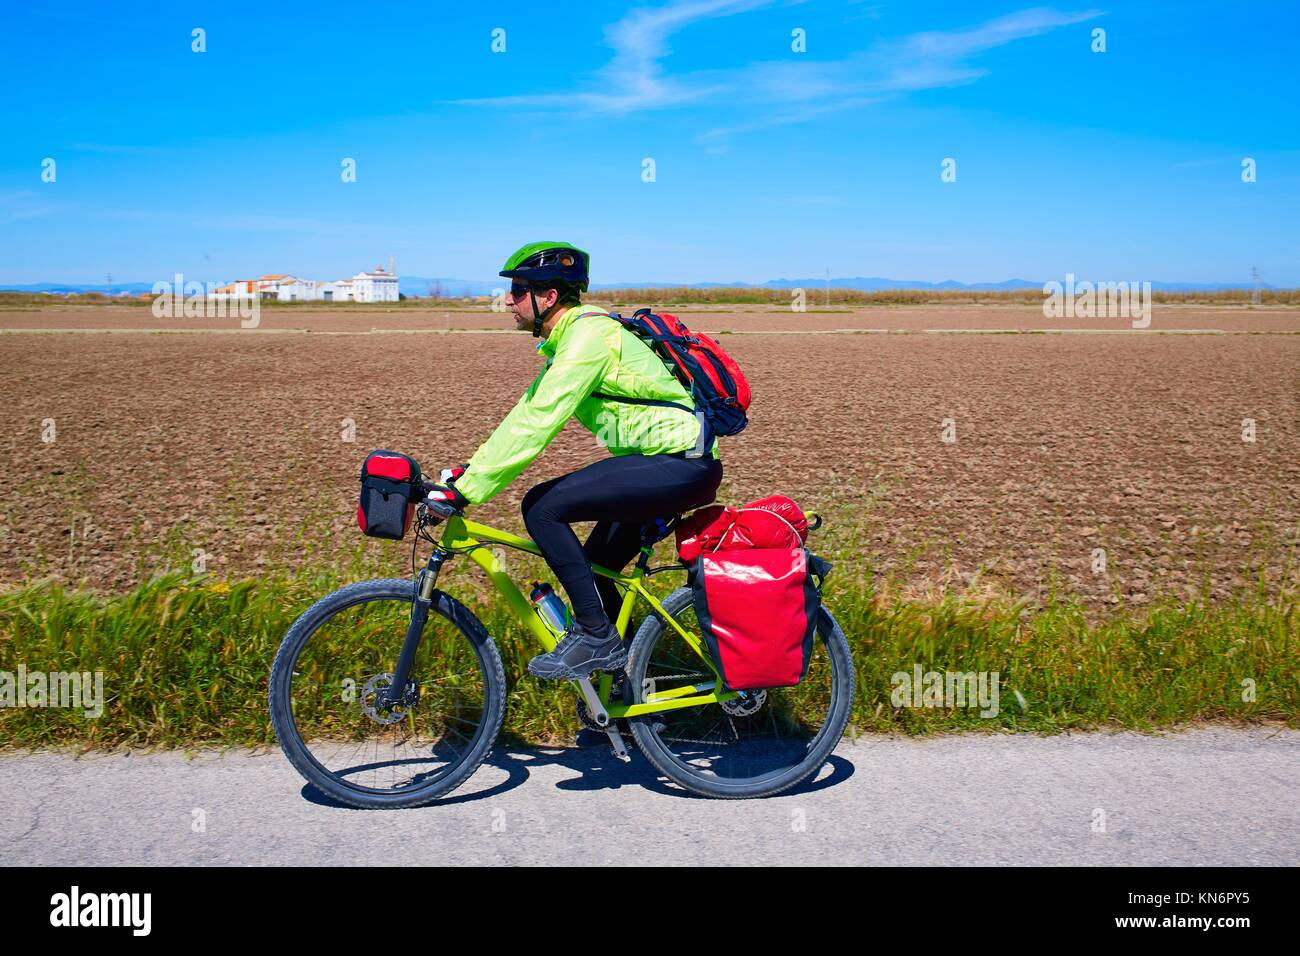 MTB Biker Bicycle touring with pannier racks and saddlebag. - Stock Image